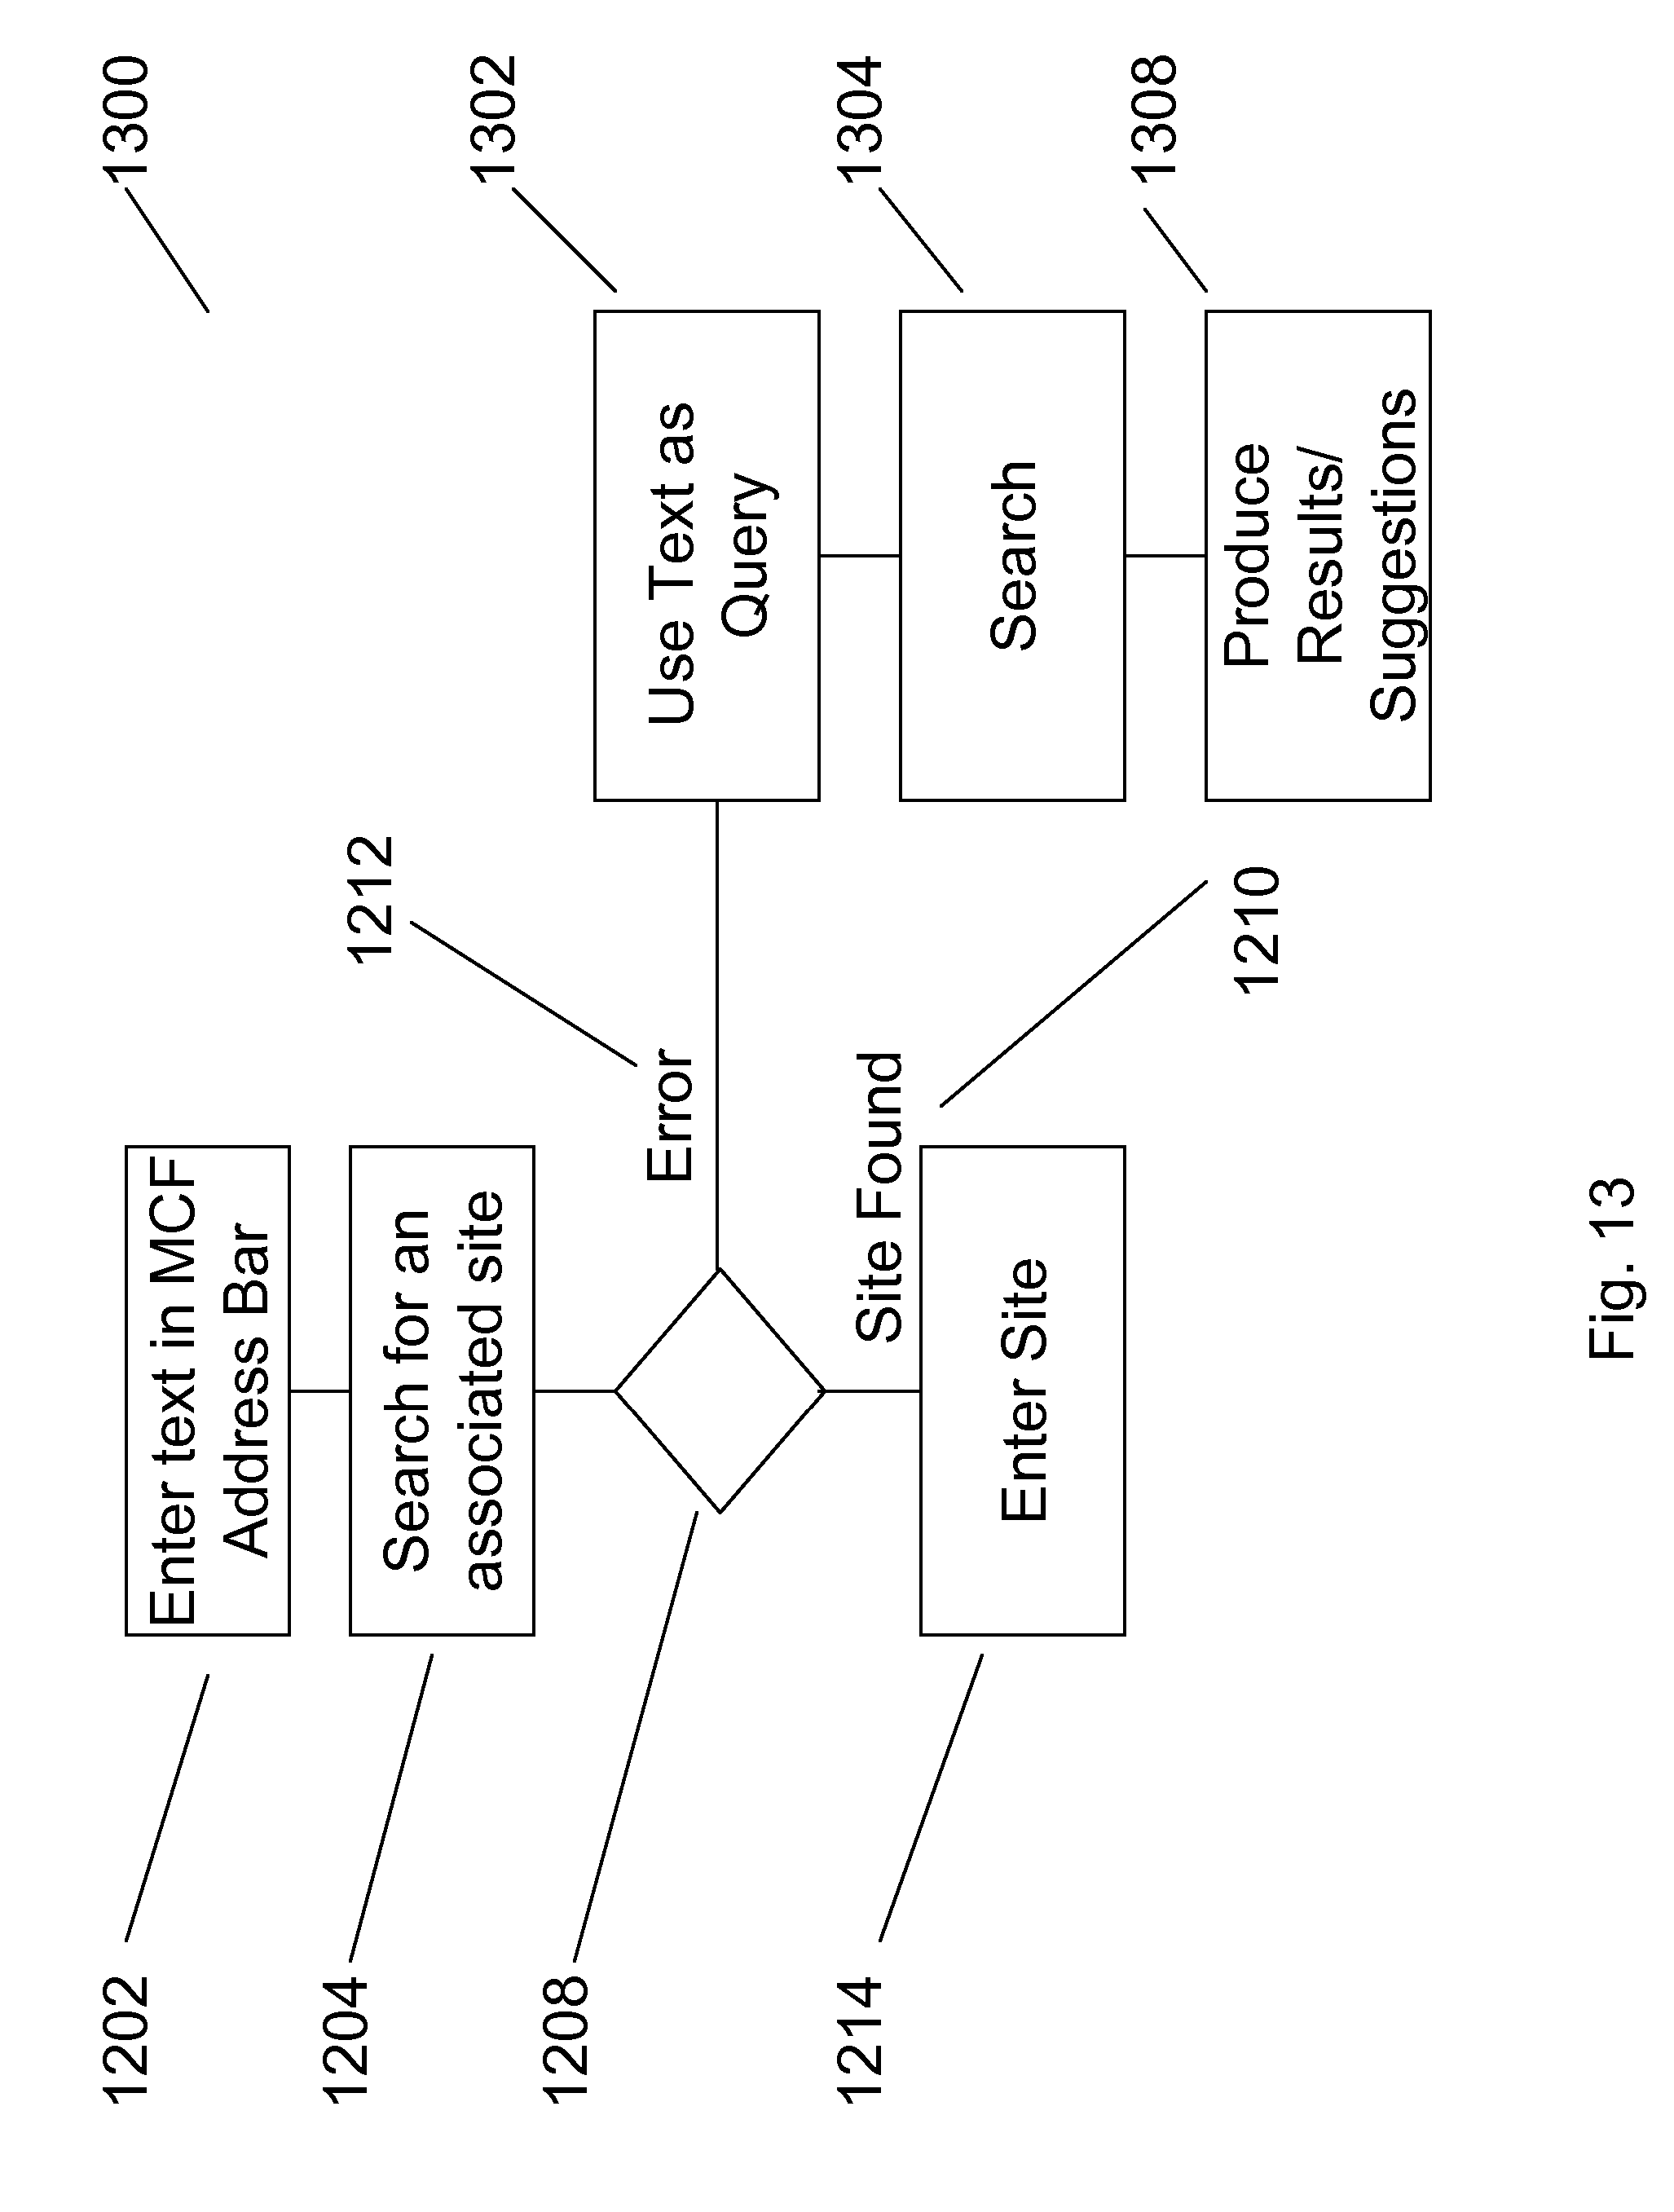 patent assignment search